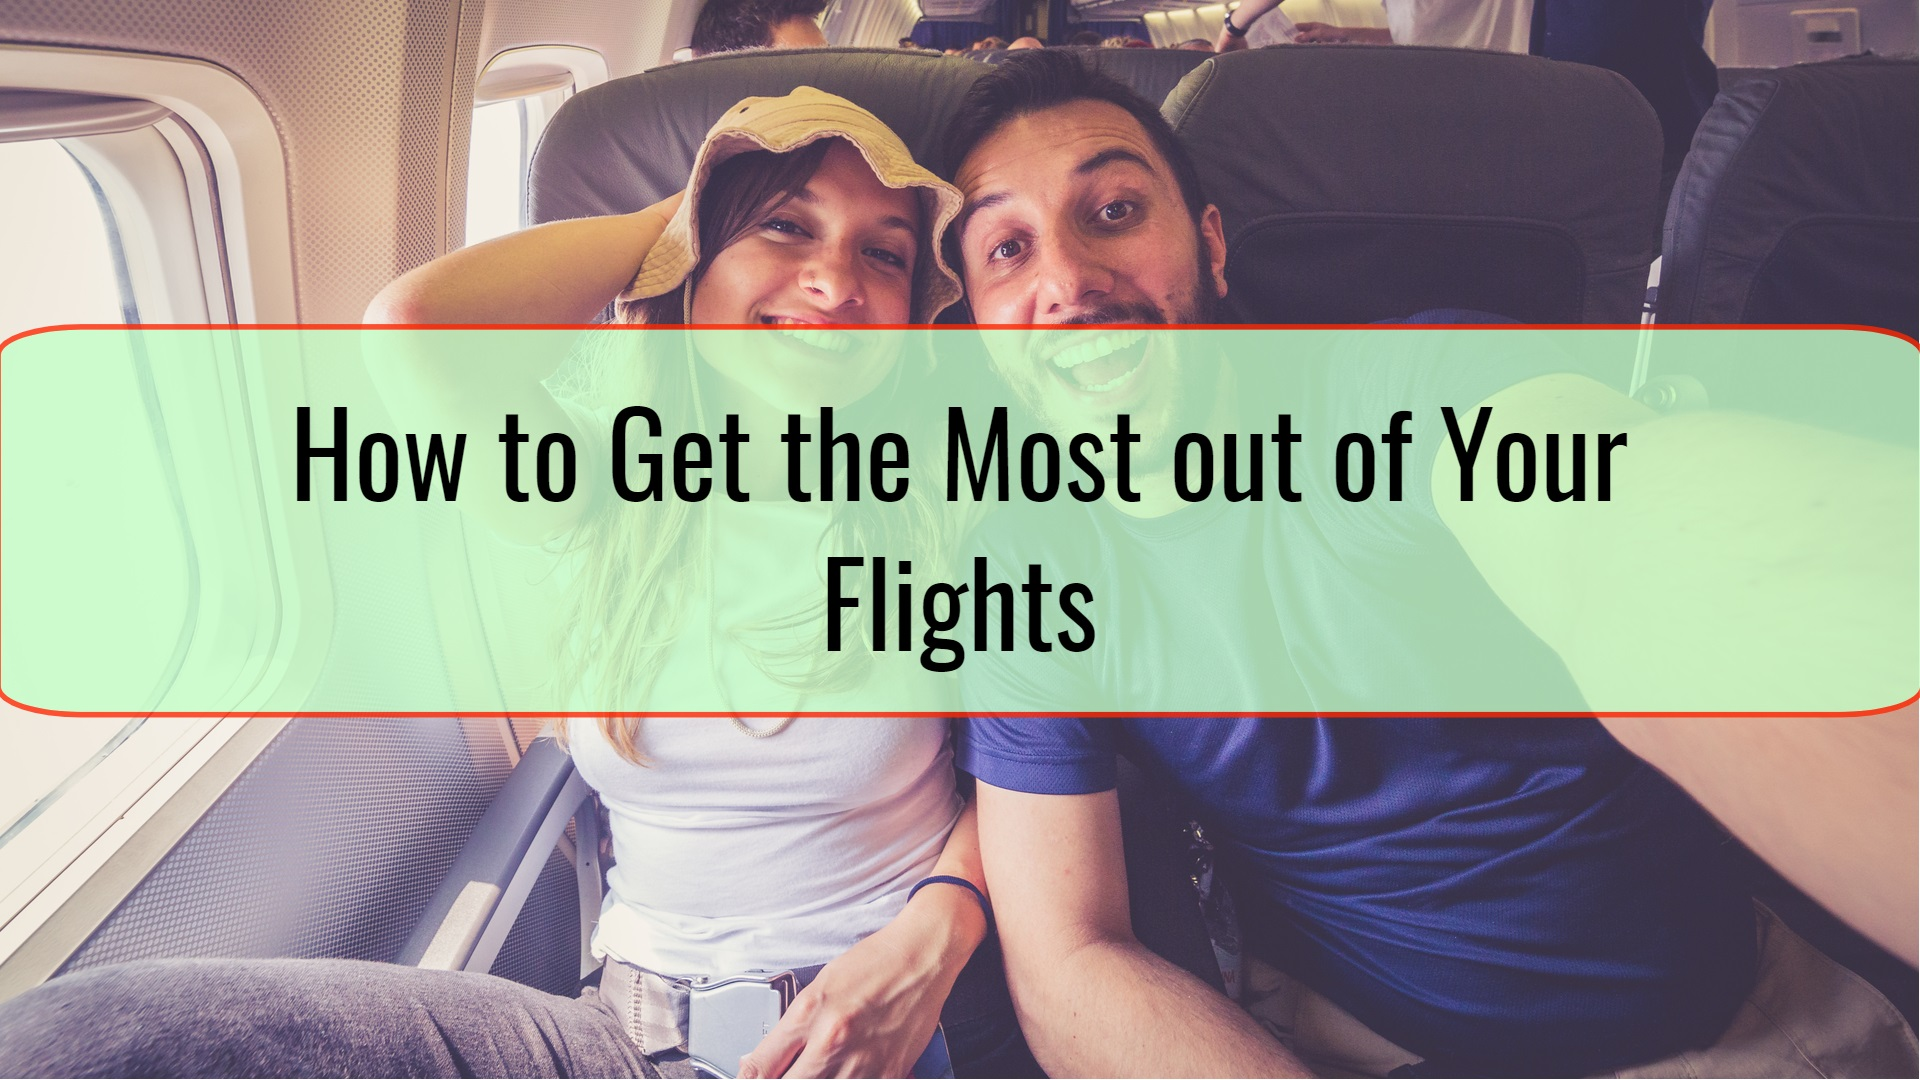 How to Get the Most out of Your Flights